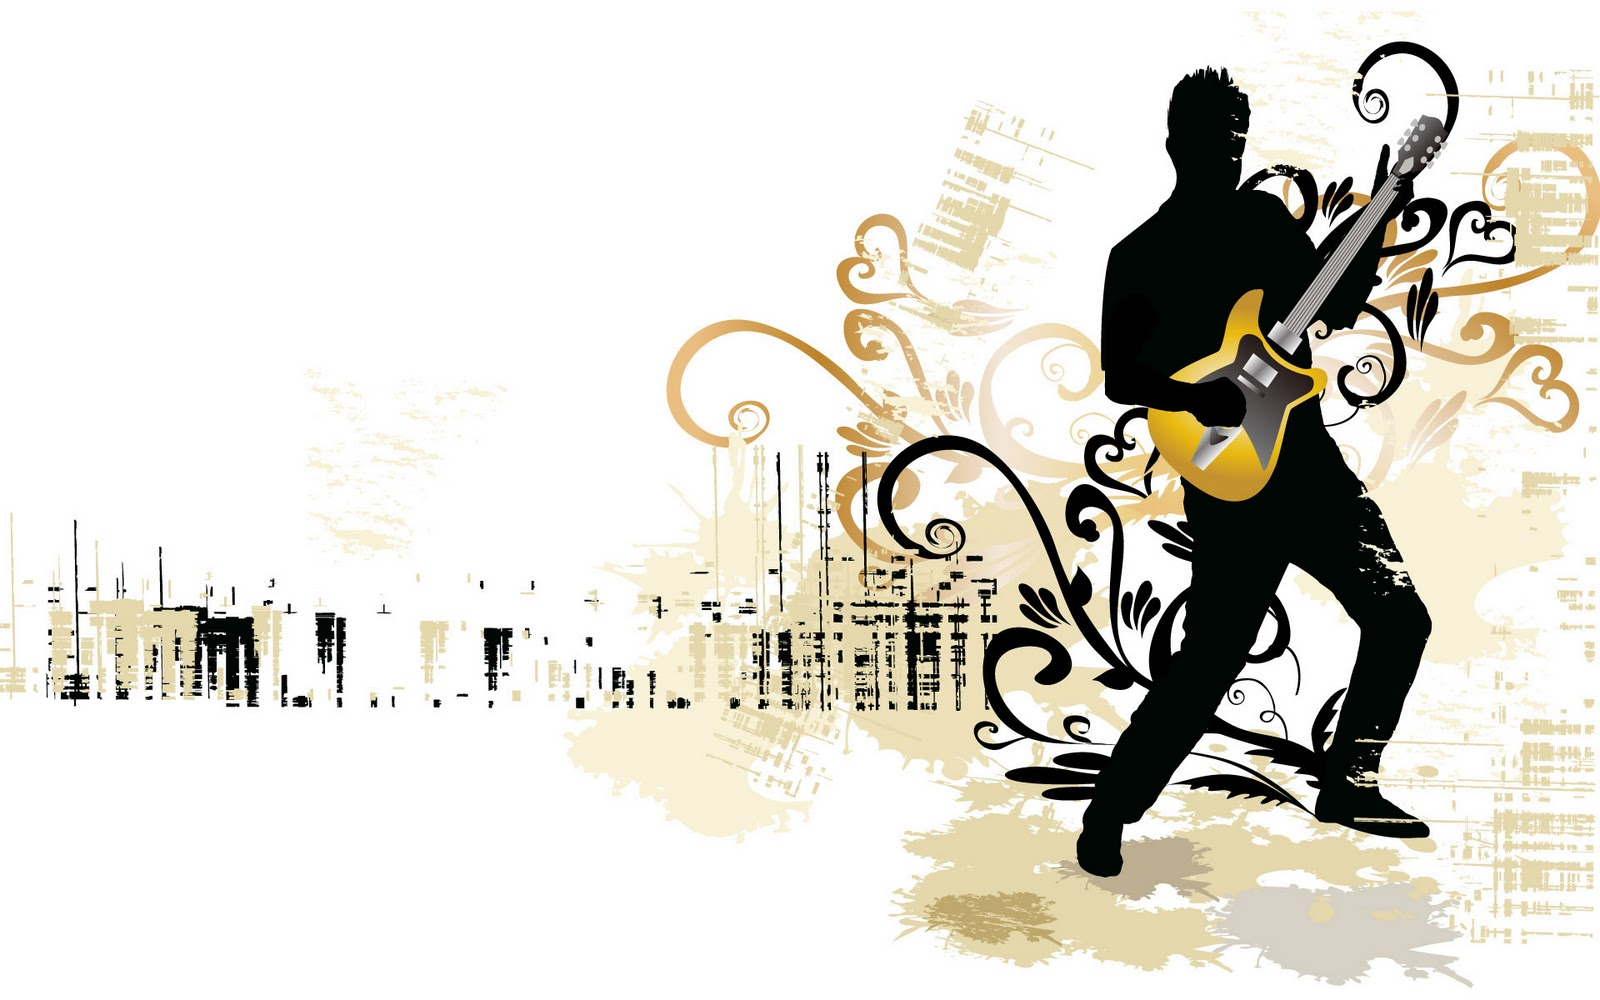 Graphic Design Music Wallpaper 7329 Hd Wallpapers In Creative Graphics